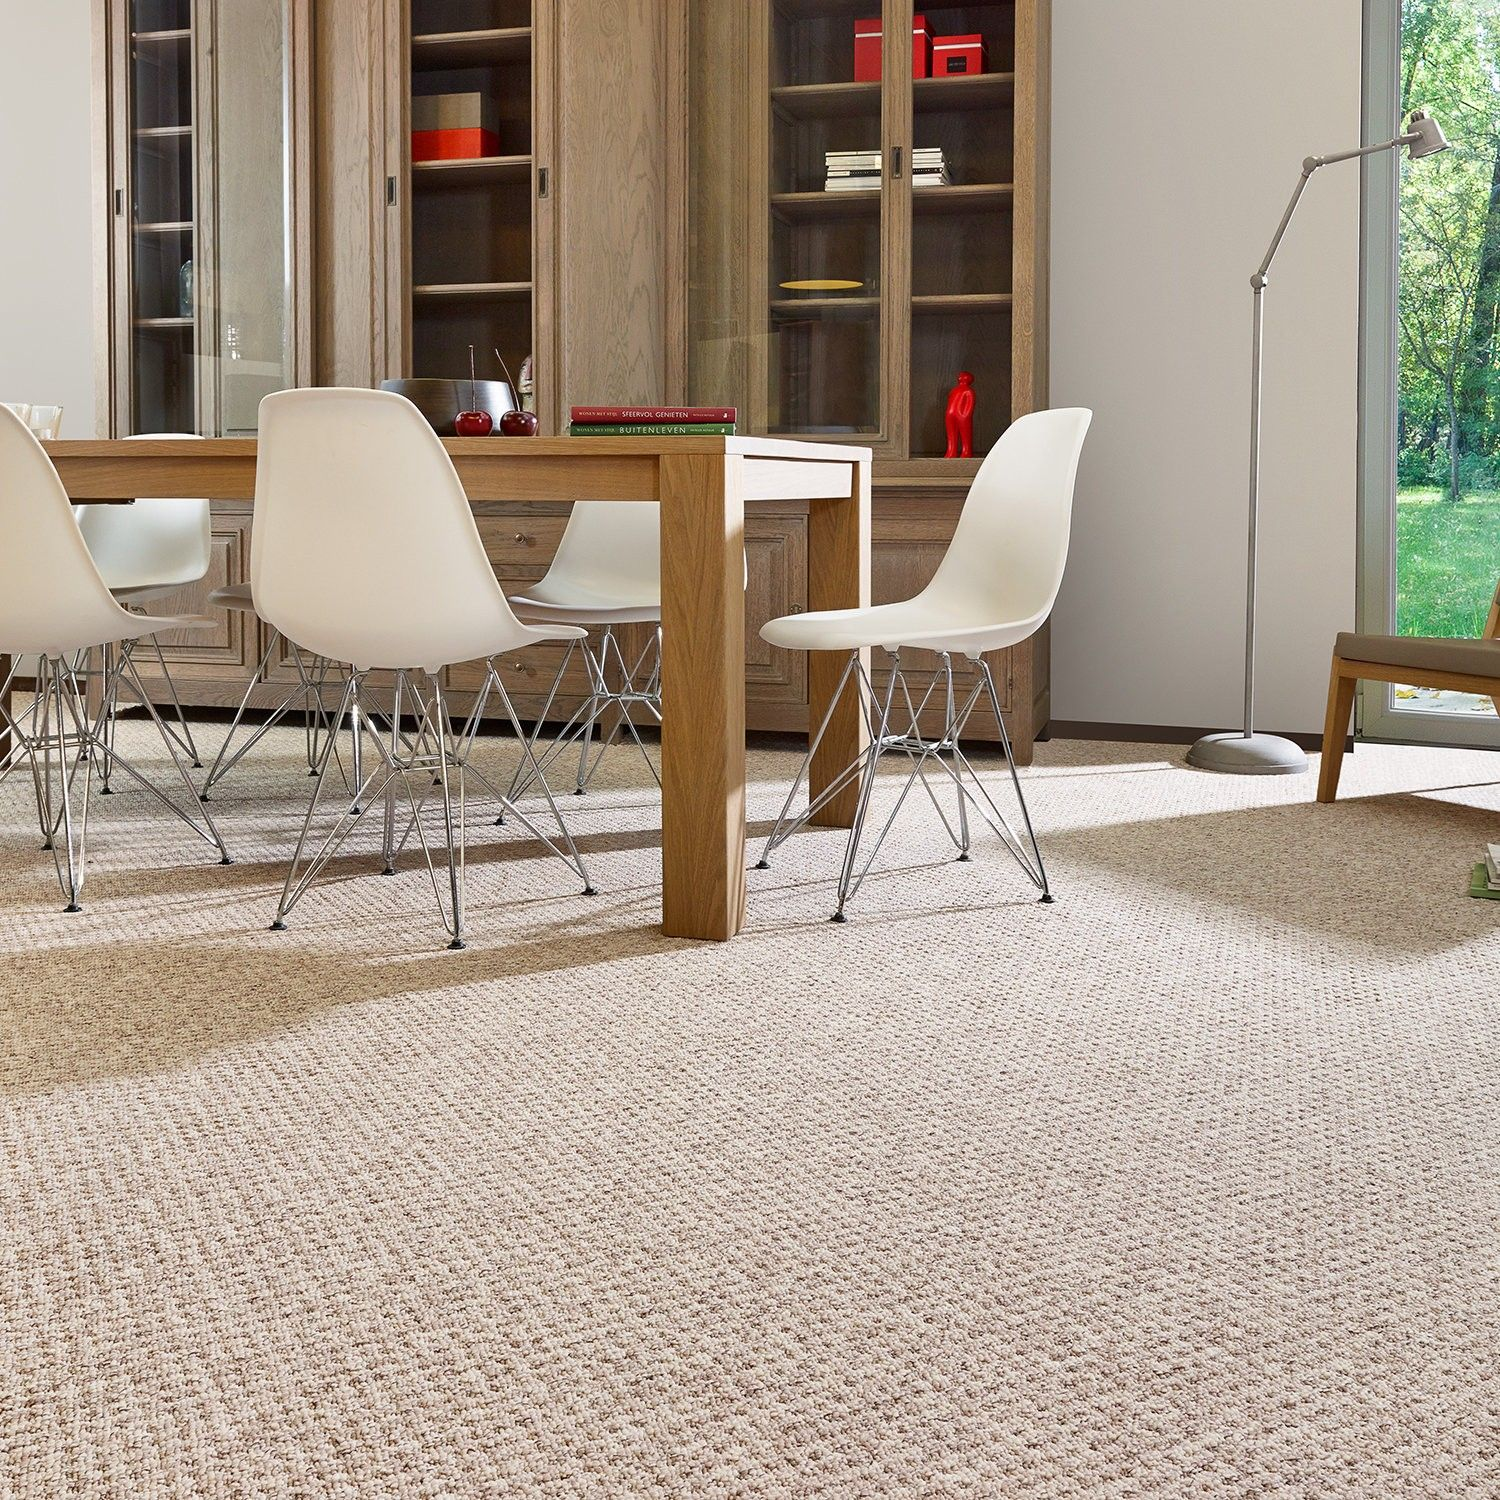 Brighten Up Your Home With This Great Value And Stylish Berber